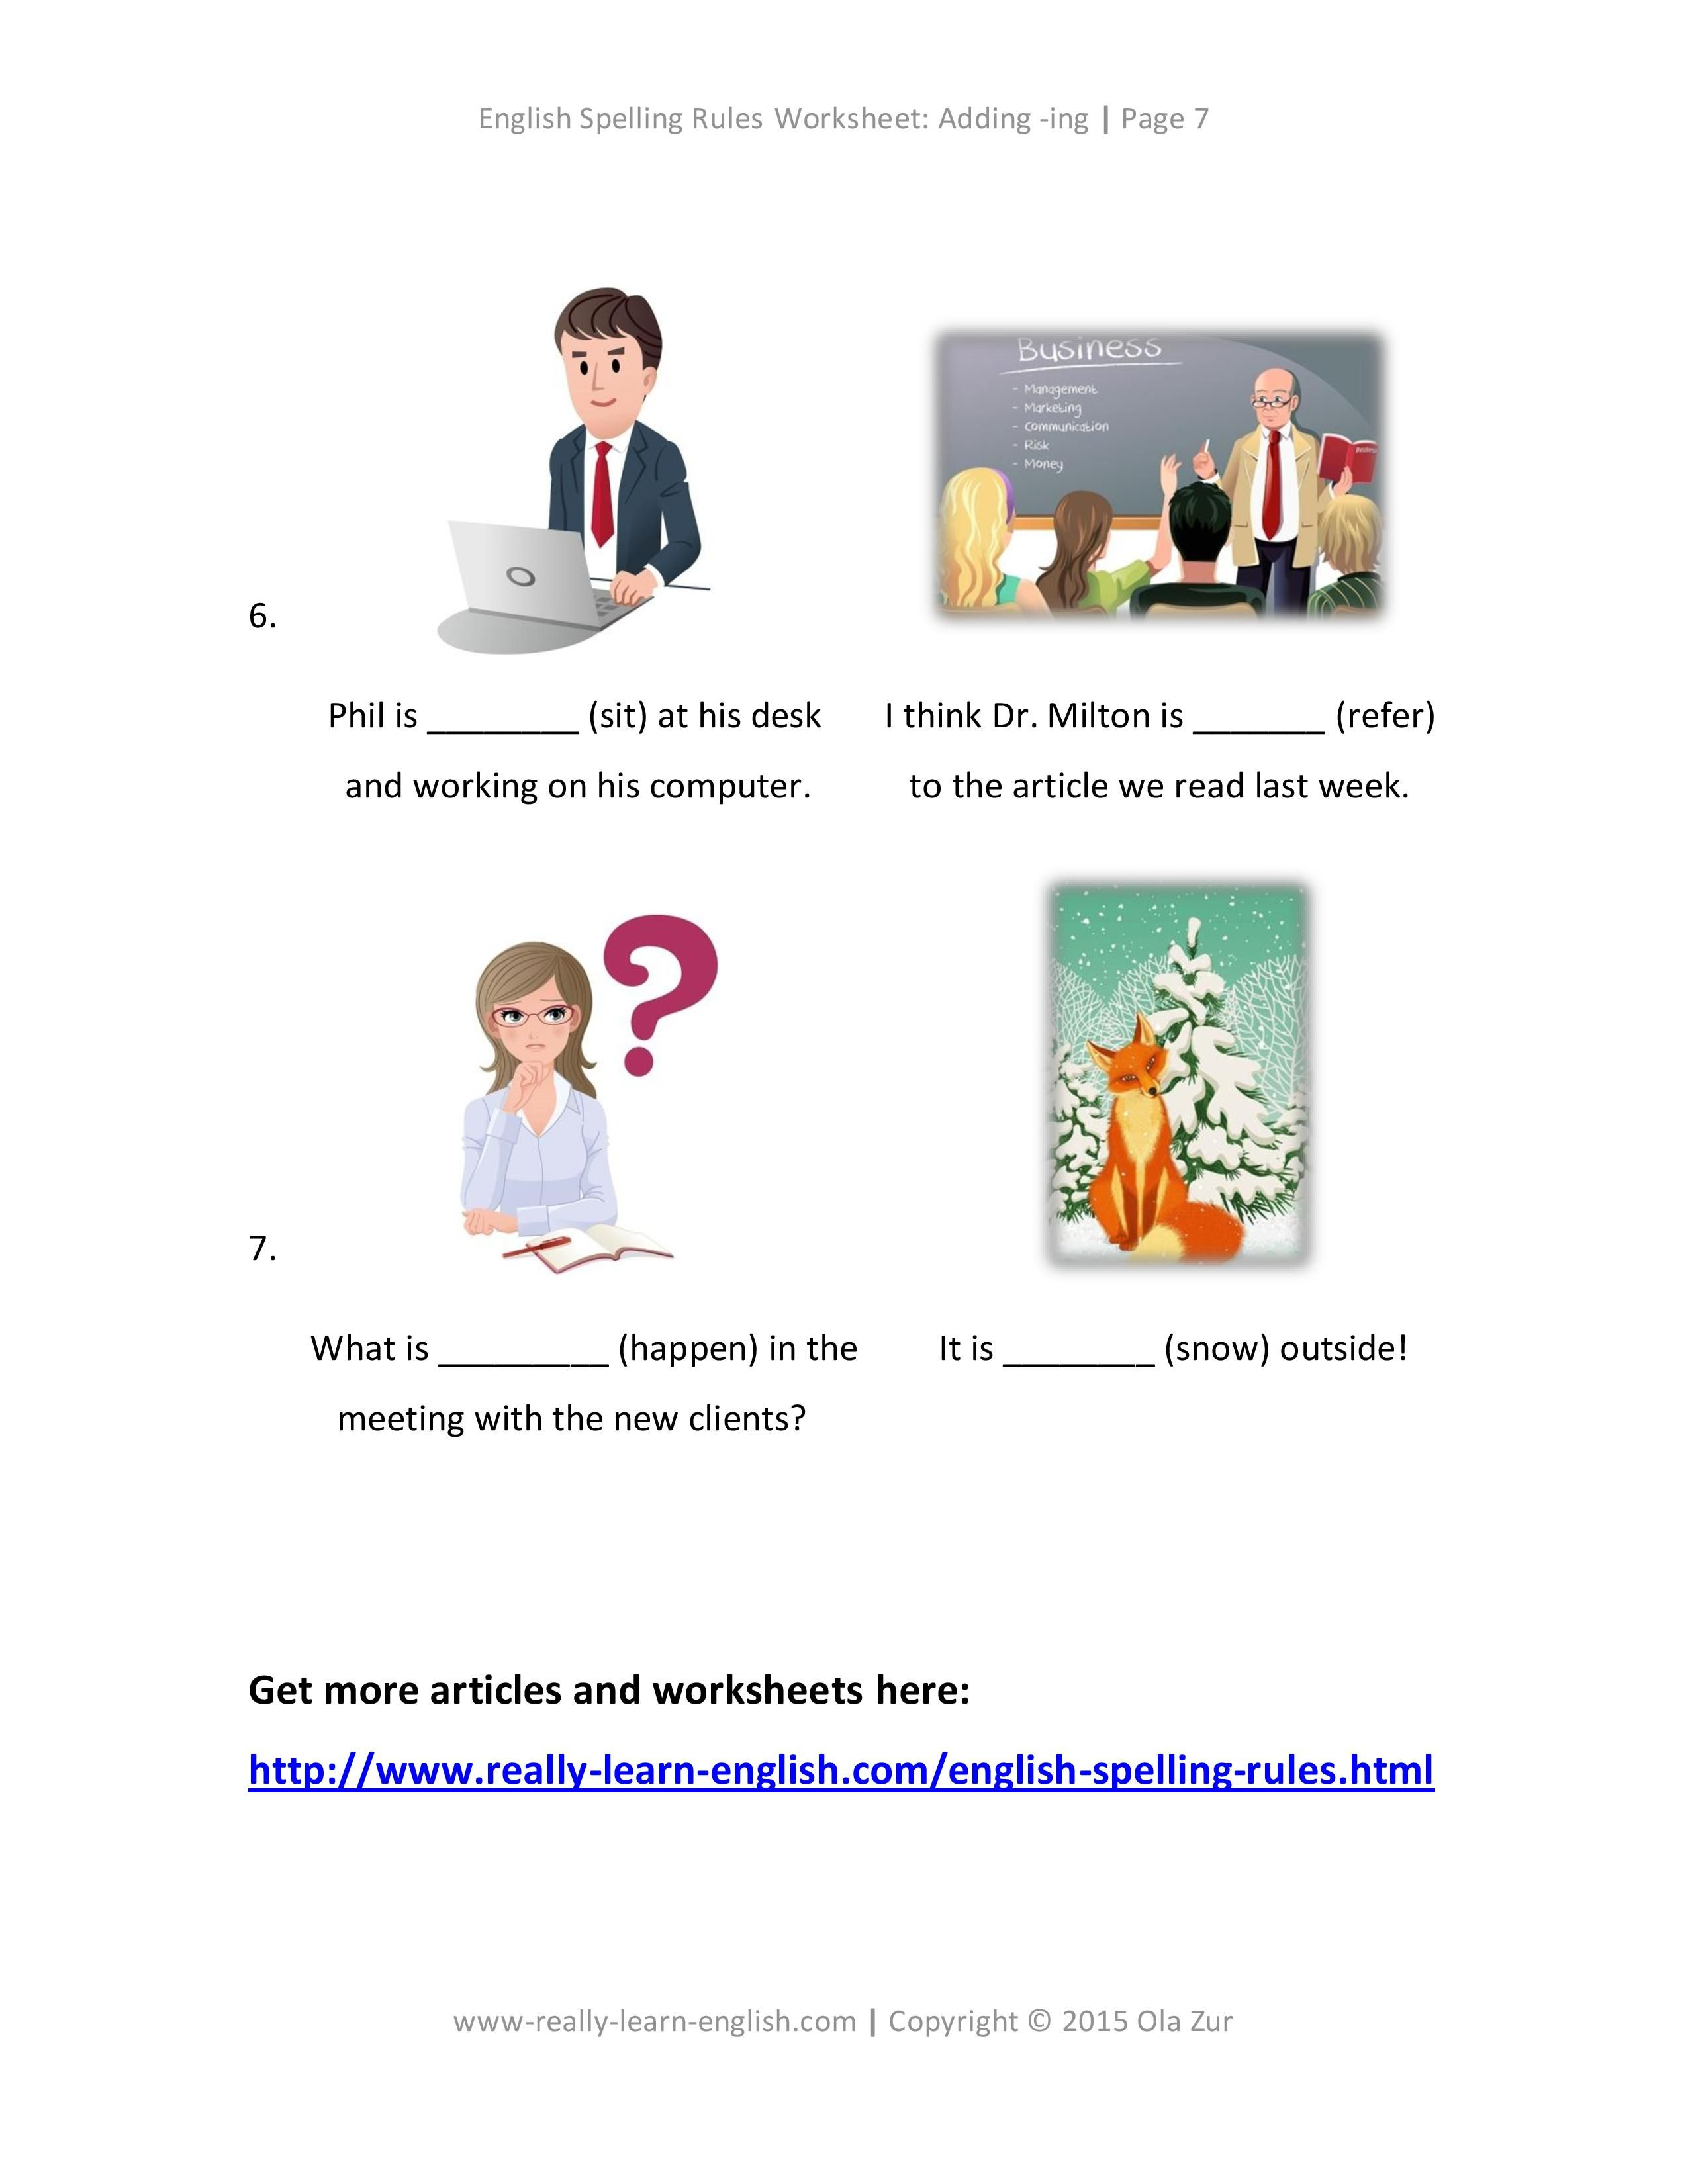 Spelling Rules For Adding Ing